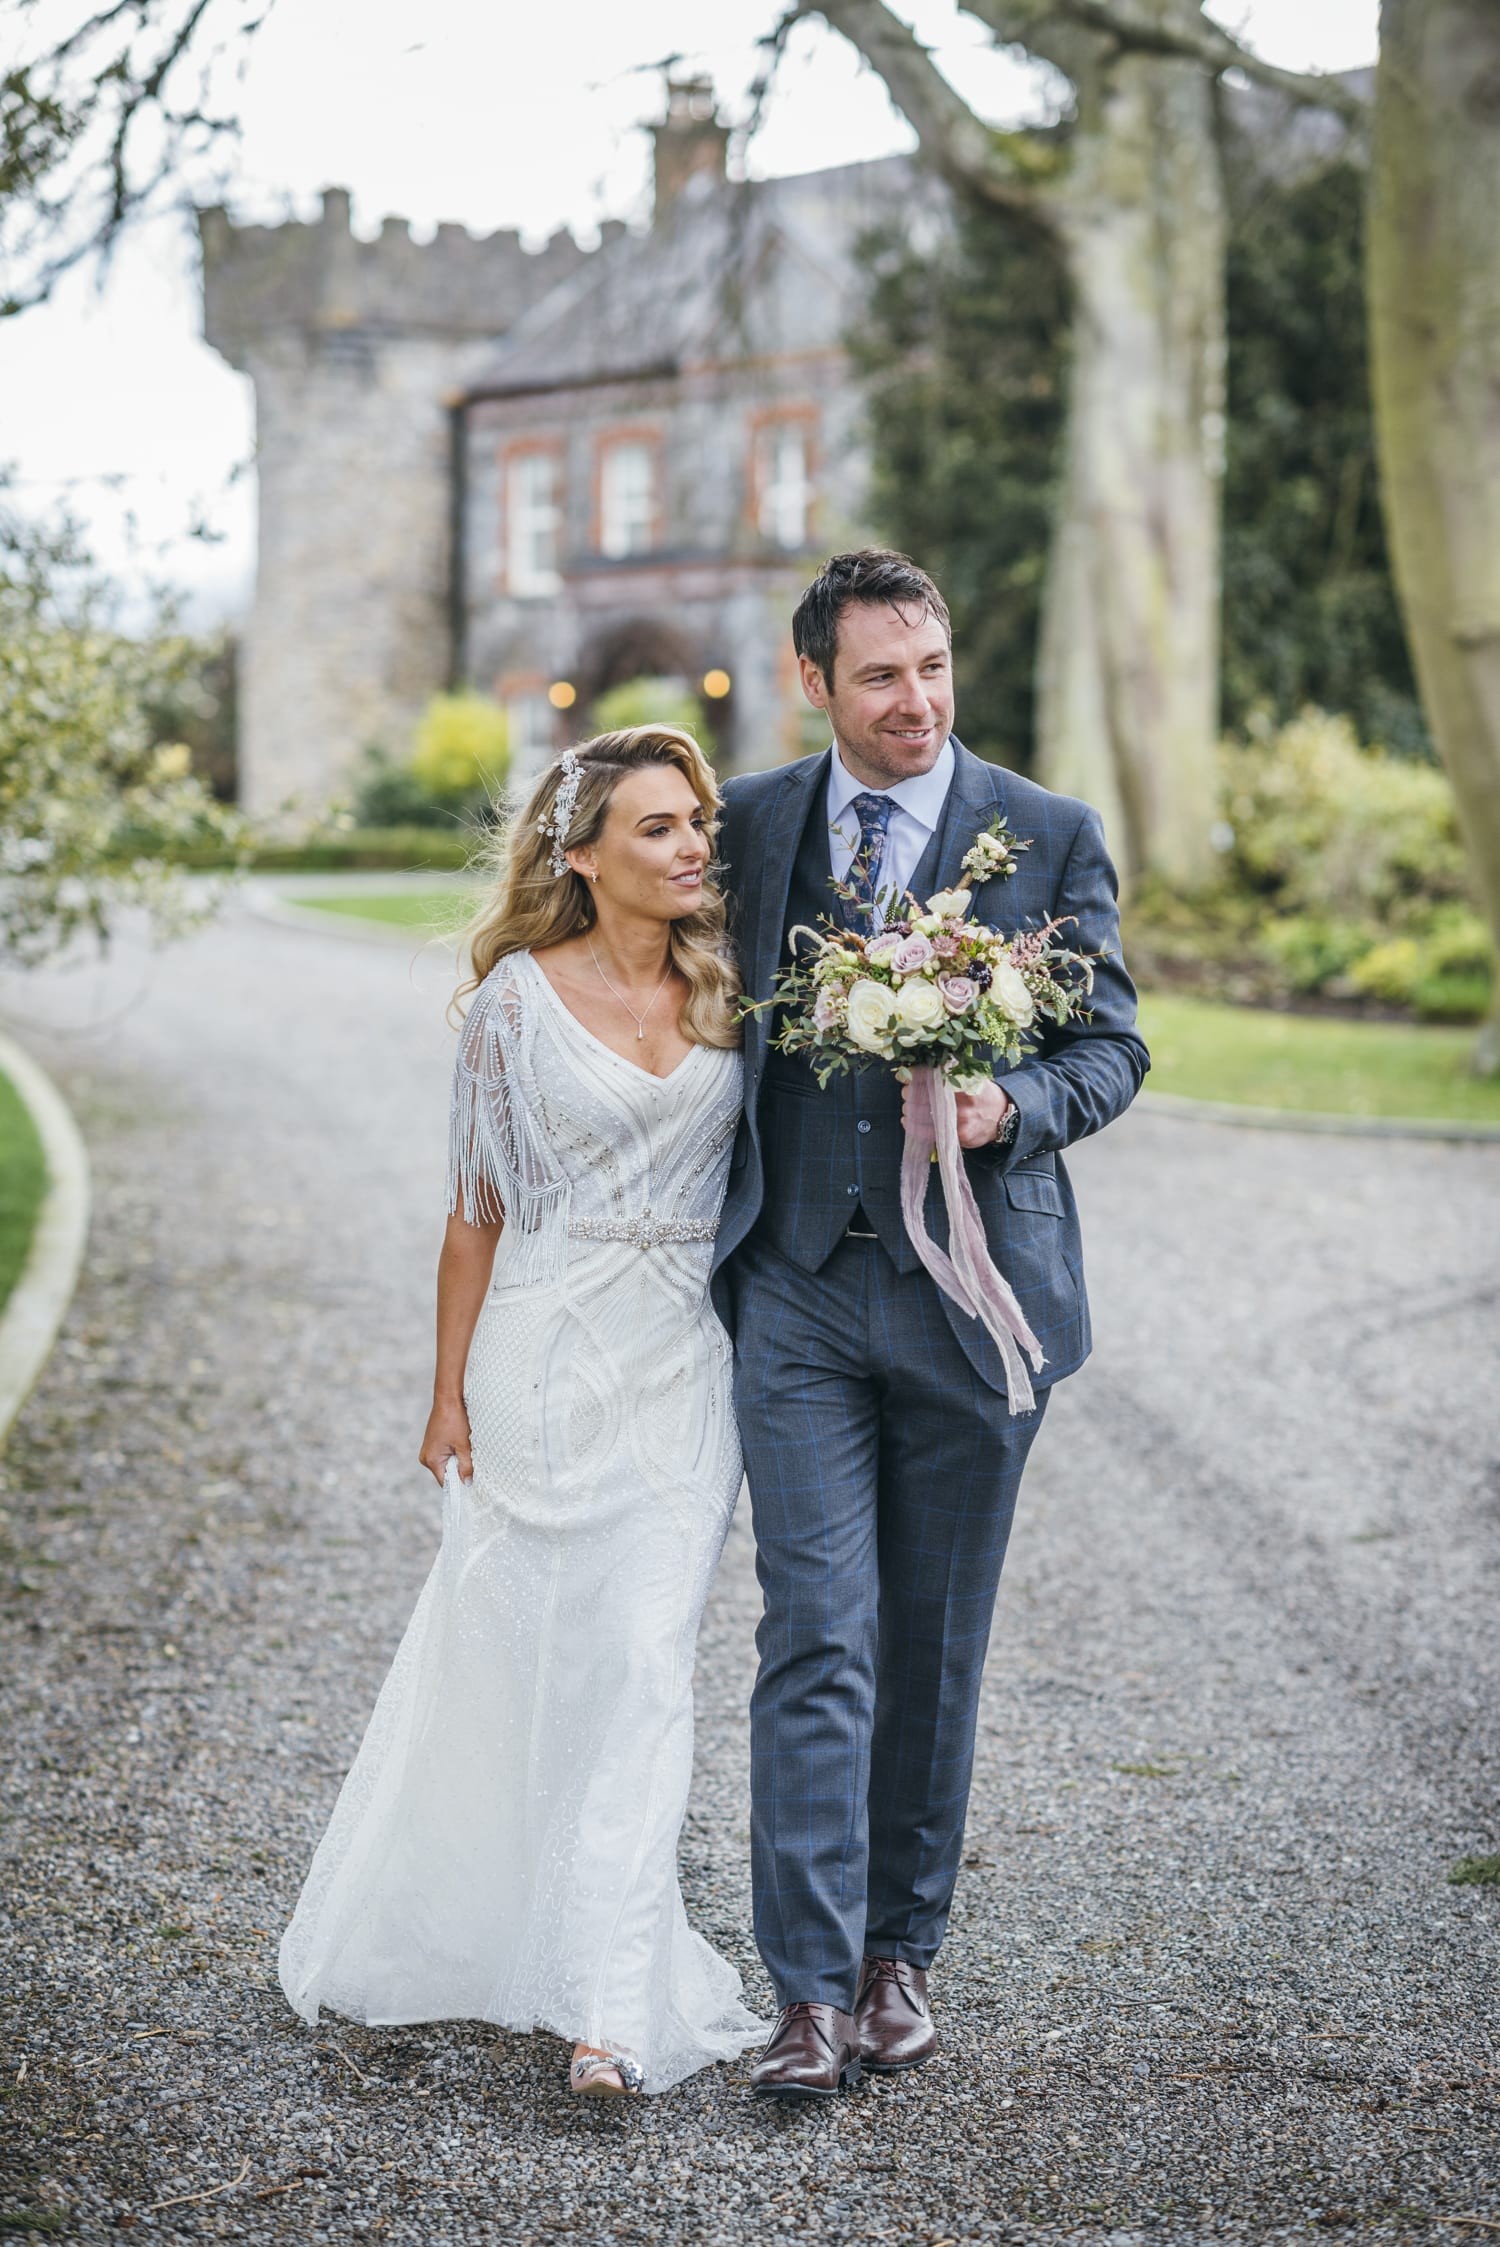 Couple walking at Ballymagarvey Village wedding